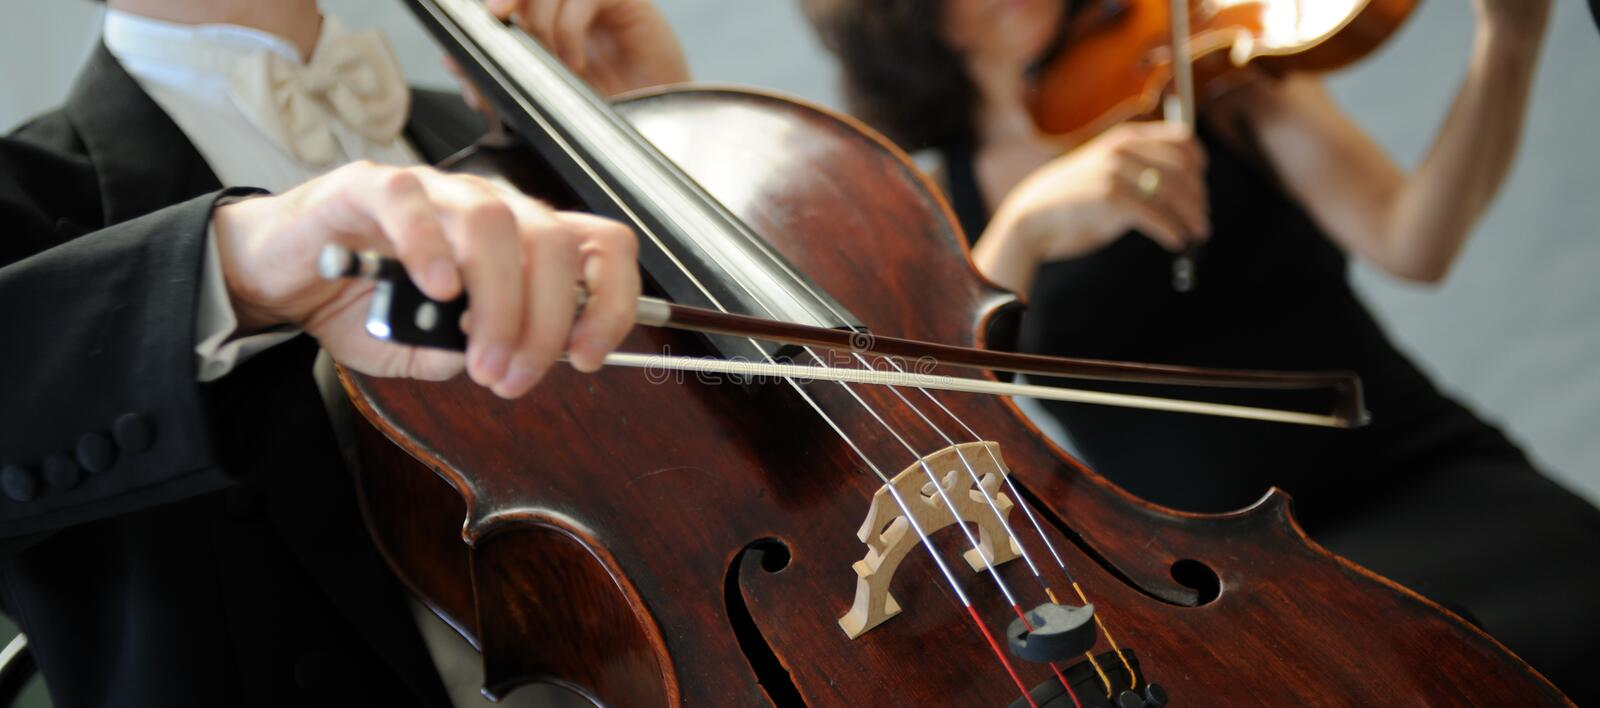 Violinists royalty free stock photography